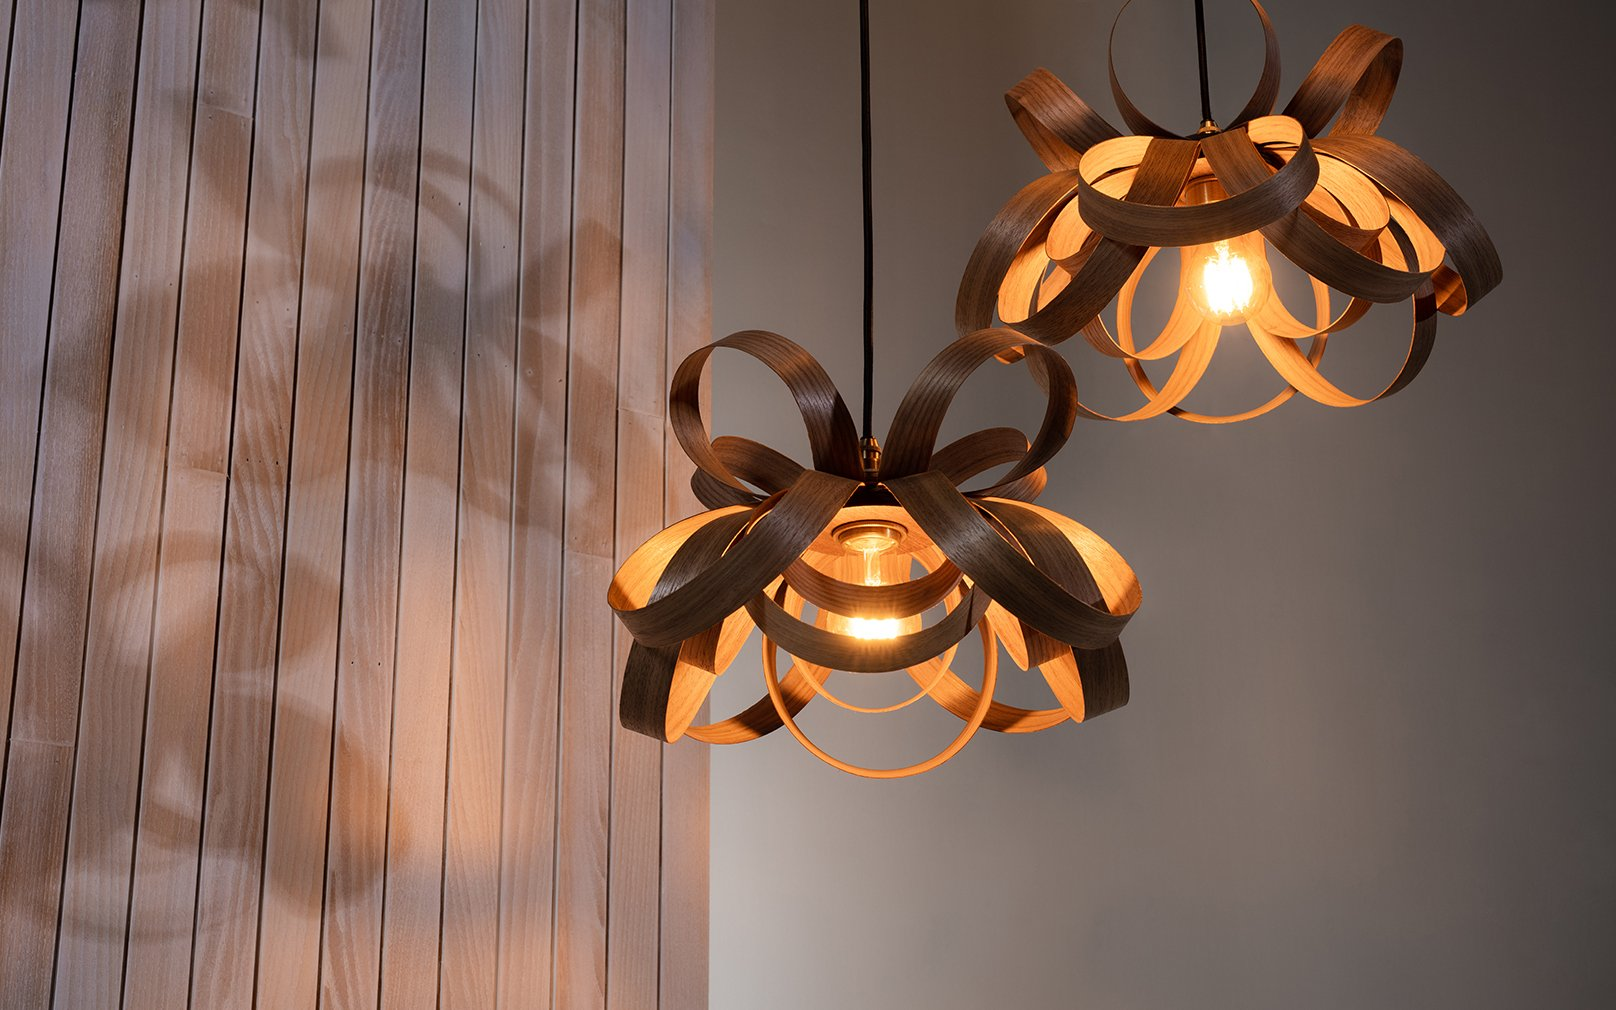 How can you decorate your small space with cluster lighting?